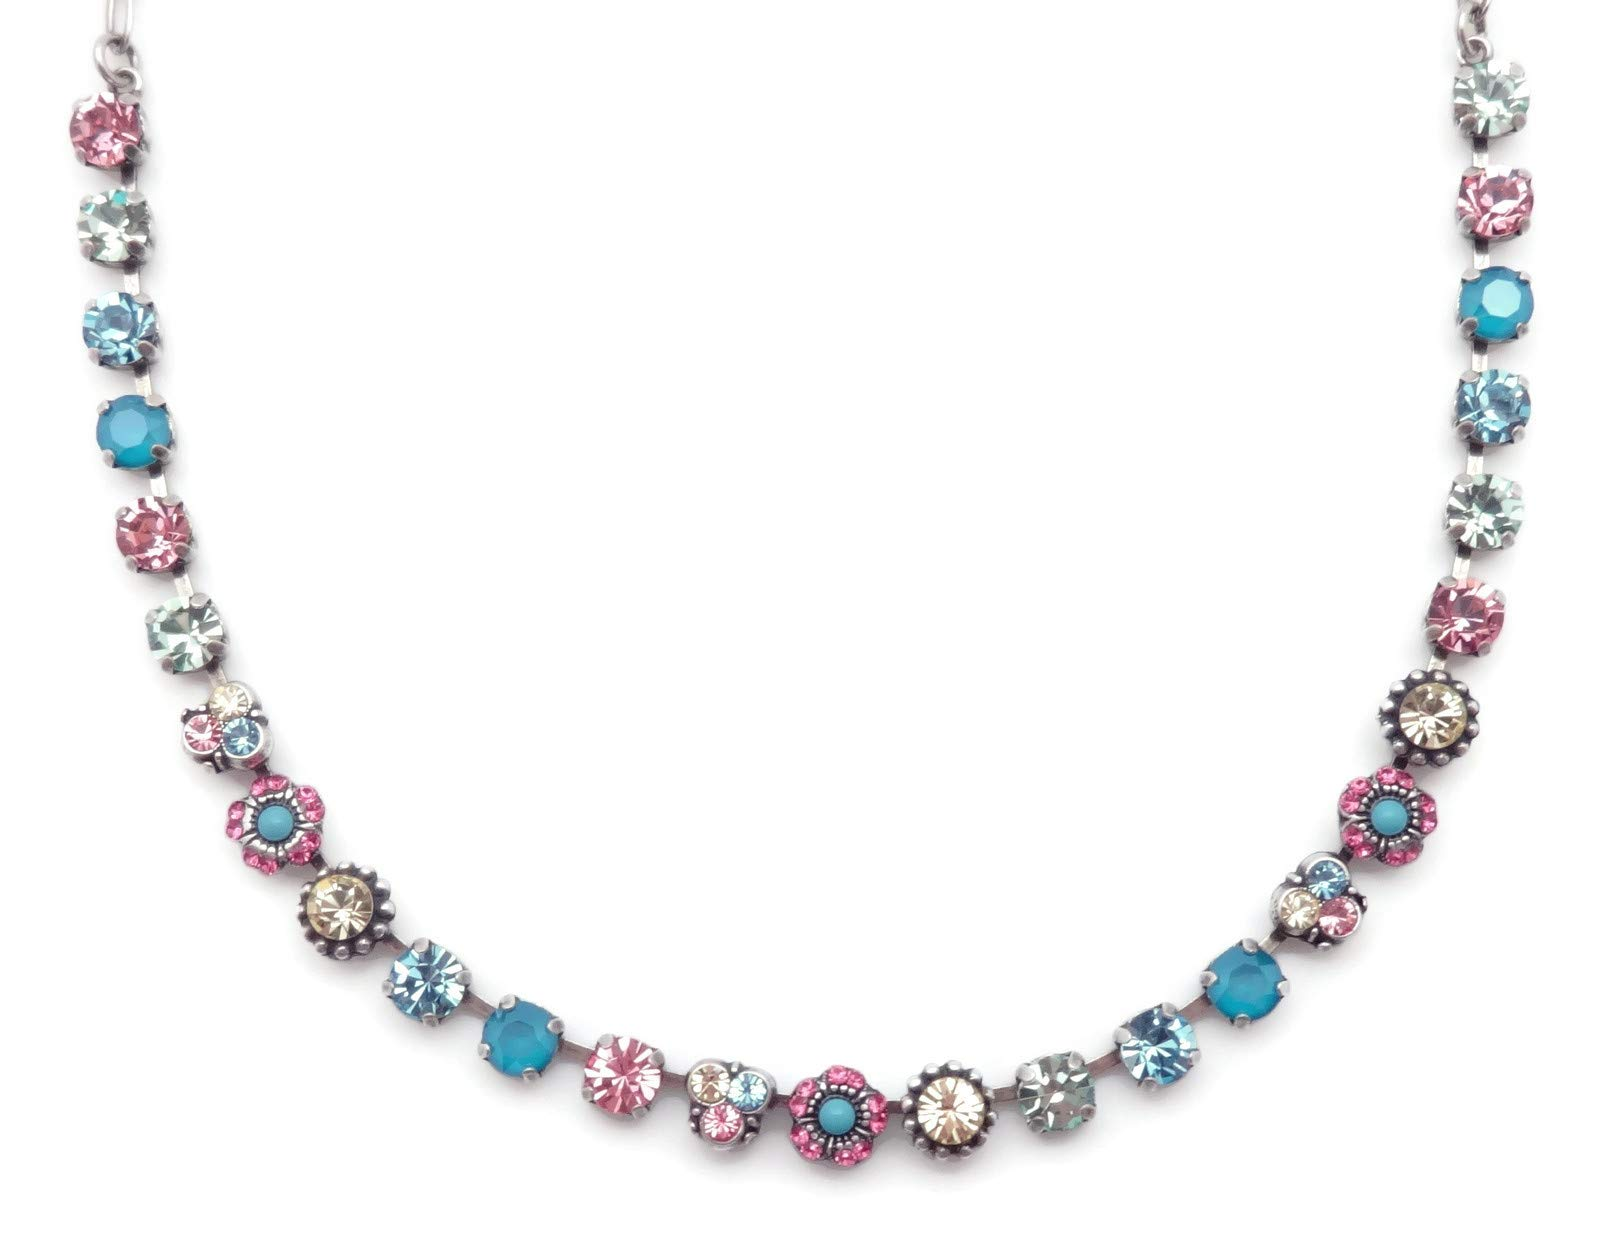 Mariana Spring Flowers Swarovski Crystal Silvertone Necklace Blue Pink Yellow Green Mix Mosaic 125 by Mariana (Image #1)